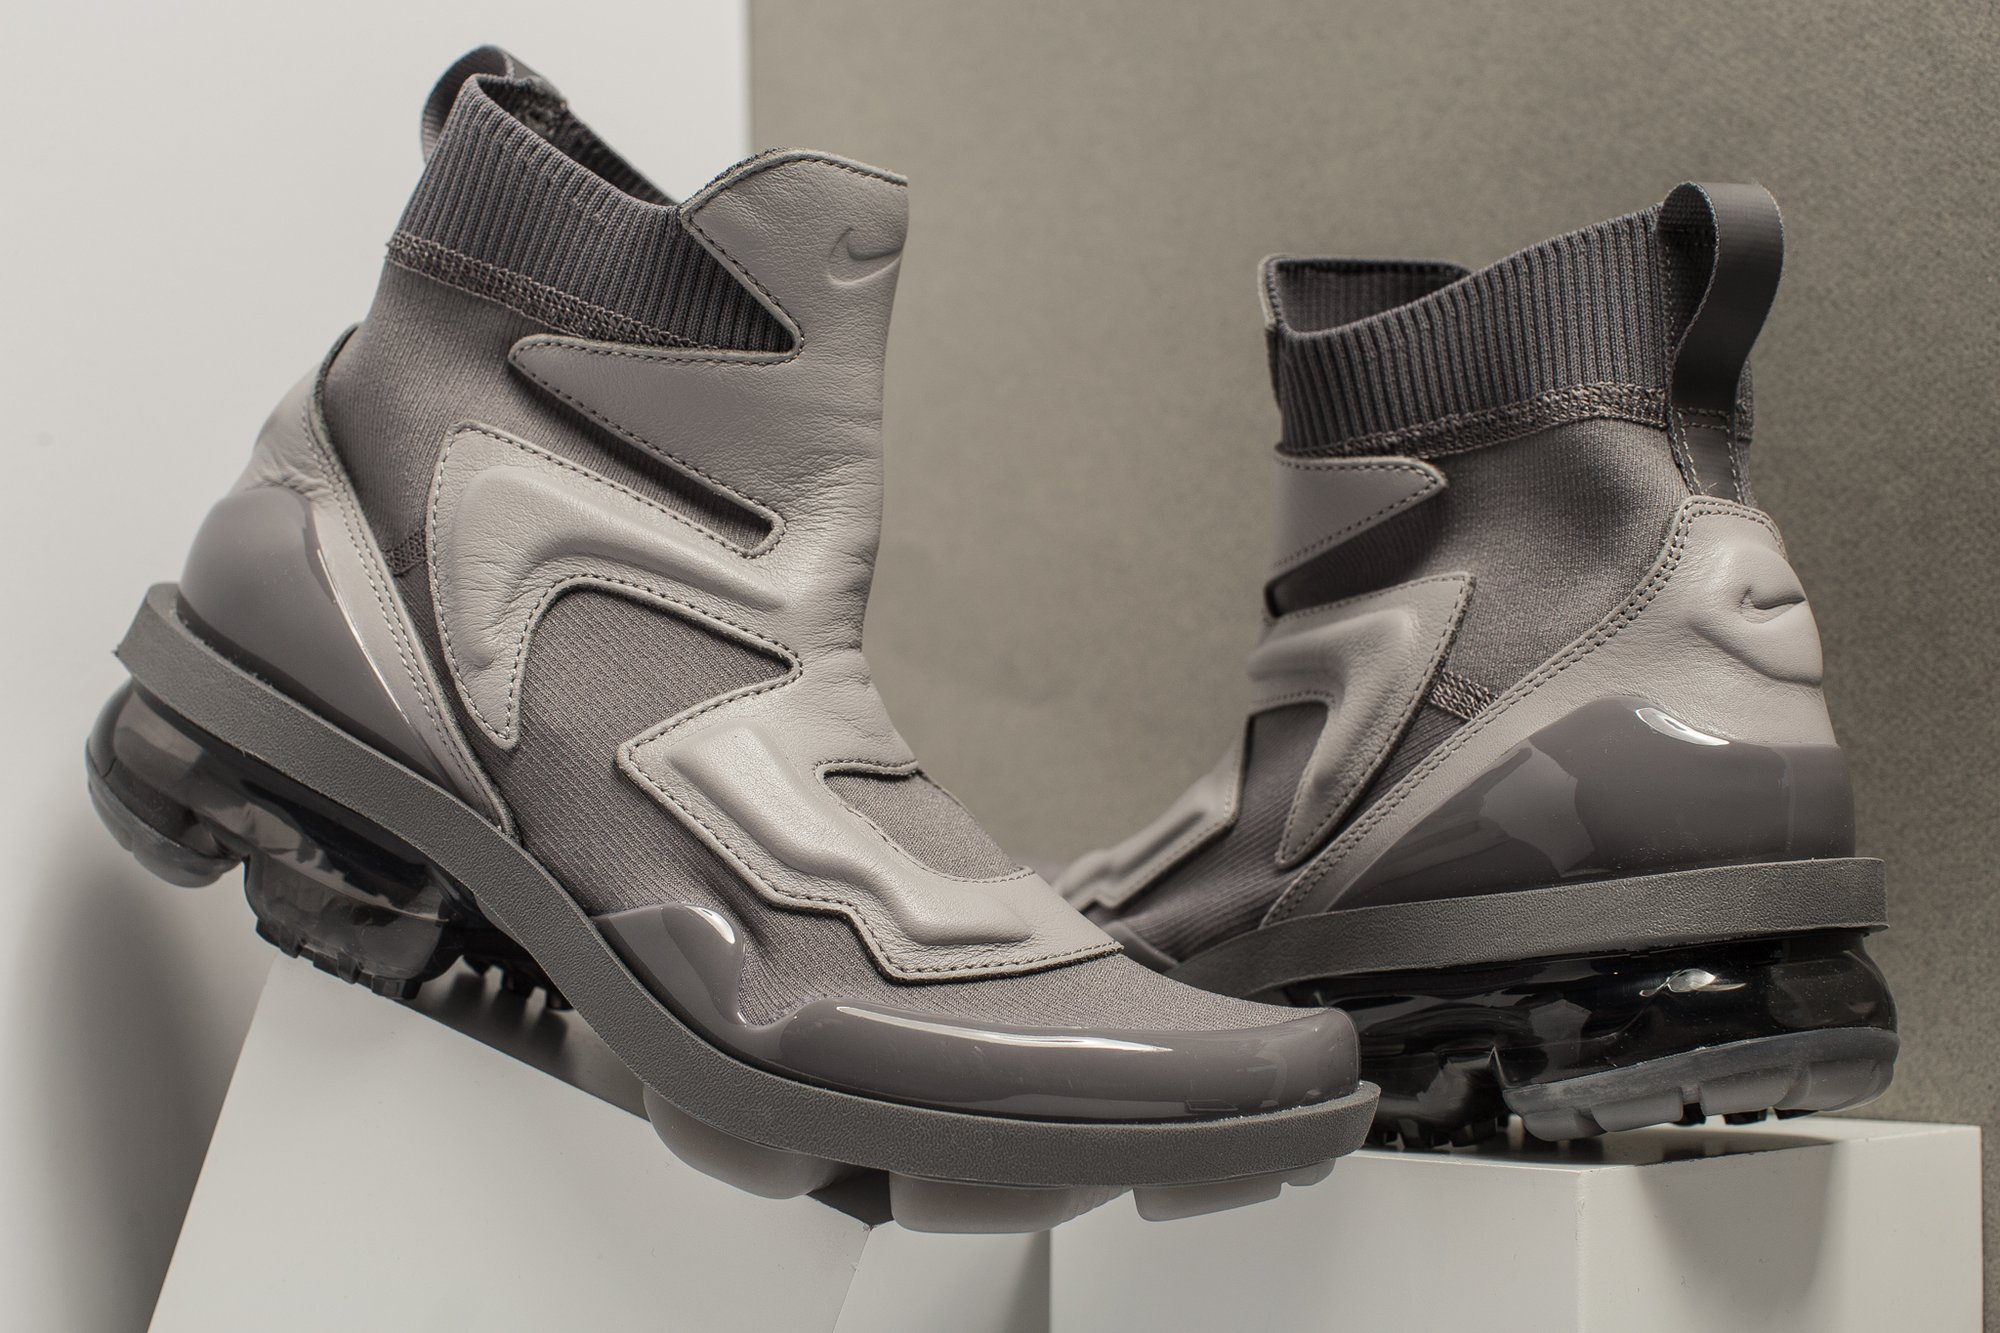 on sale e0855 895a8 The Nike VaporMax Light 2 is a Women's Boot and it's ...